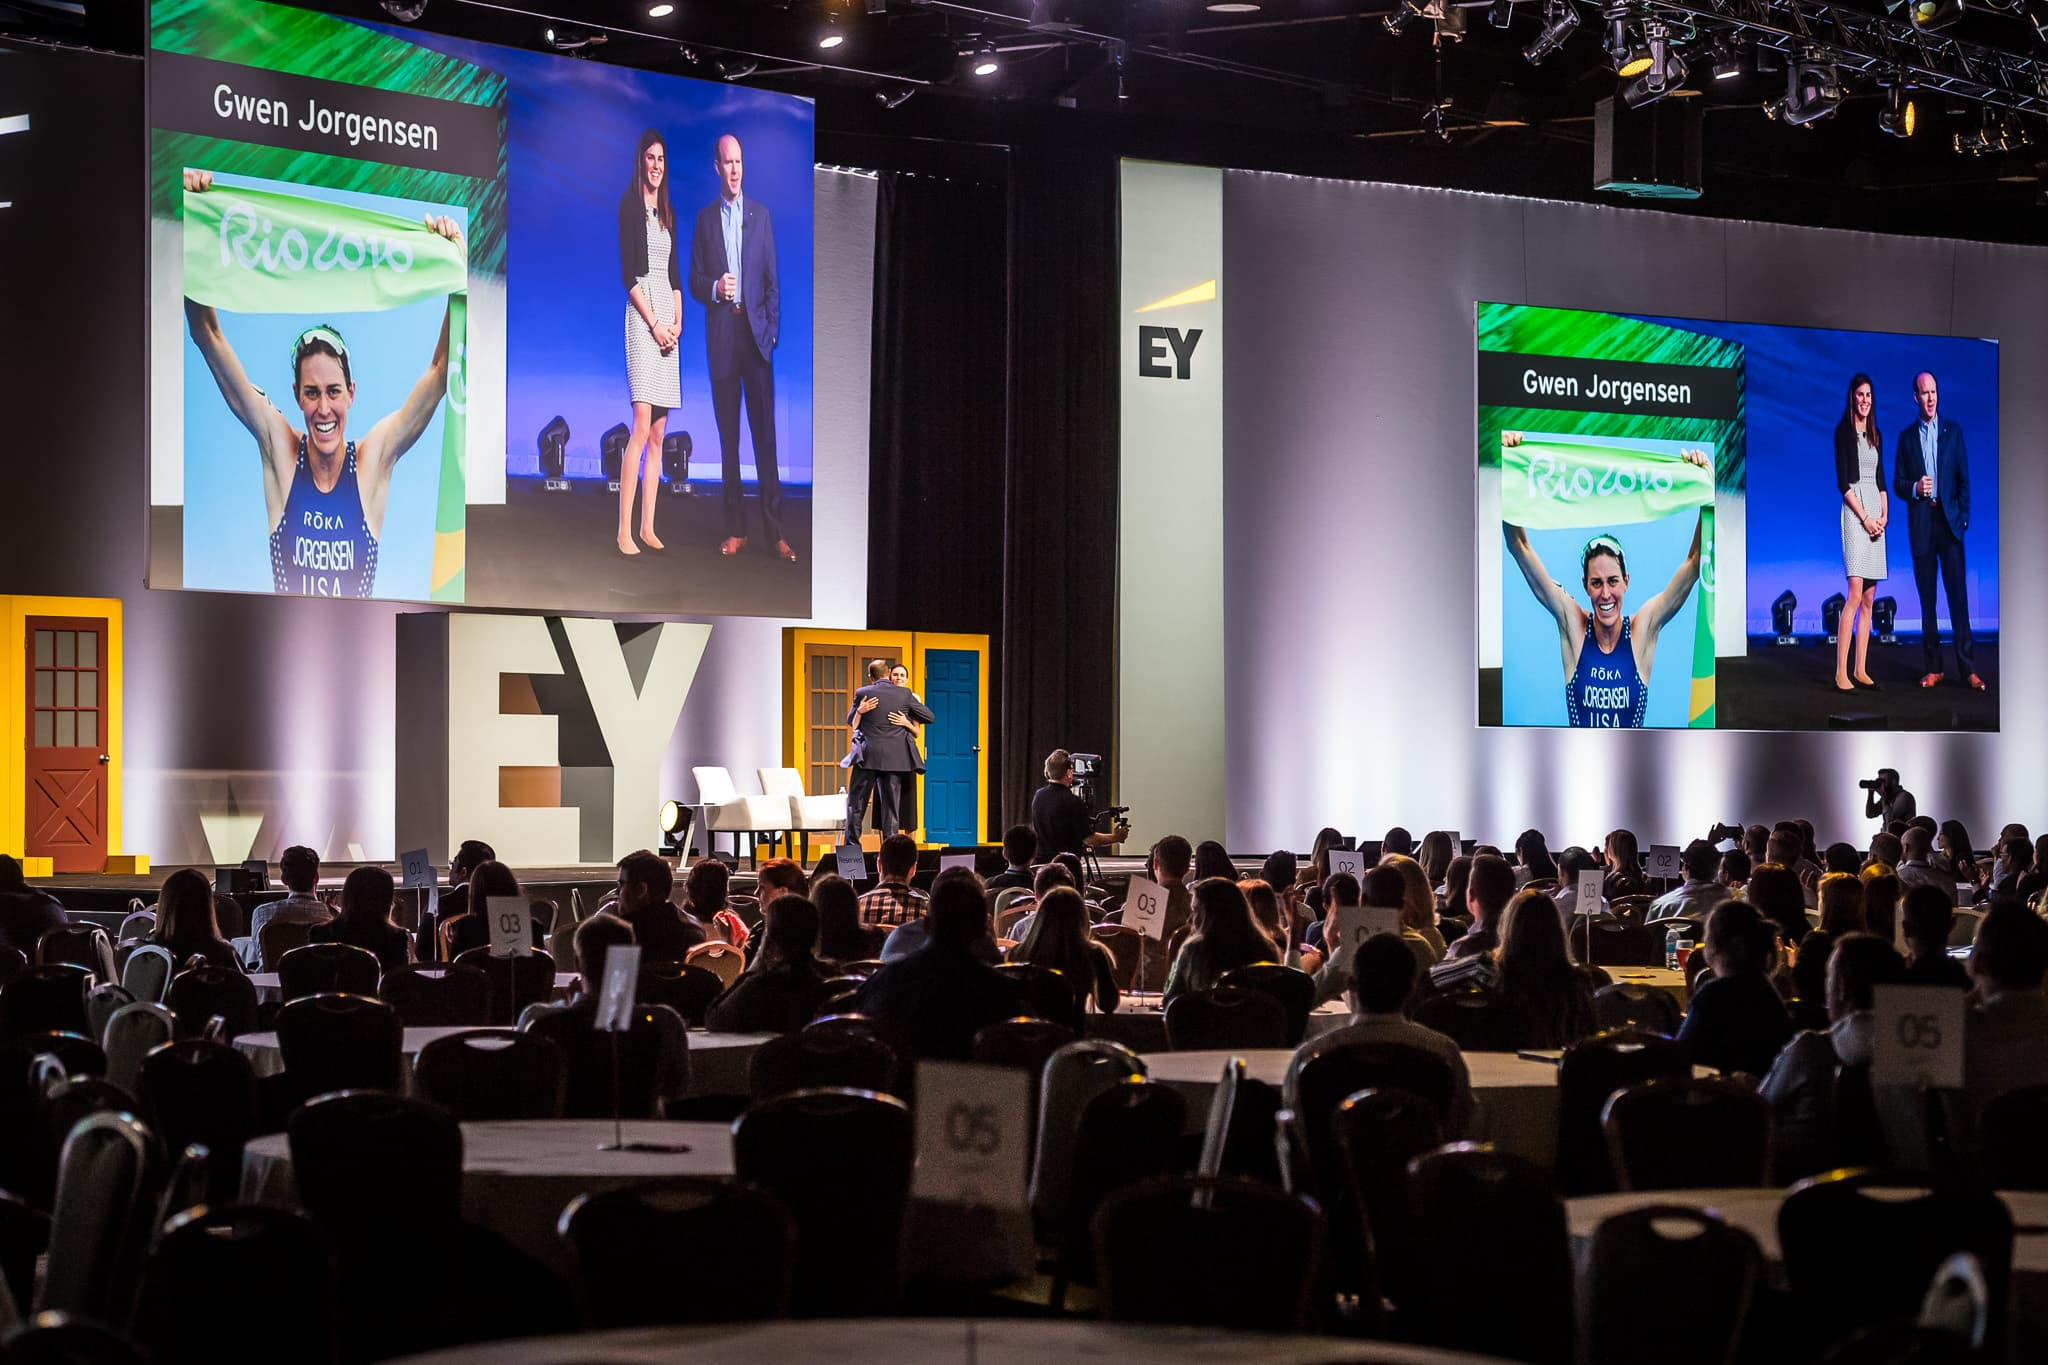 Gwen Jorgensen is greeted on stage for her talk with EY executive at their annual corporate event